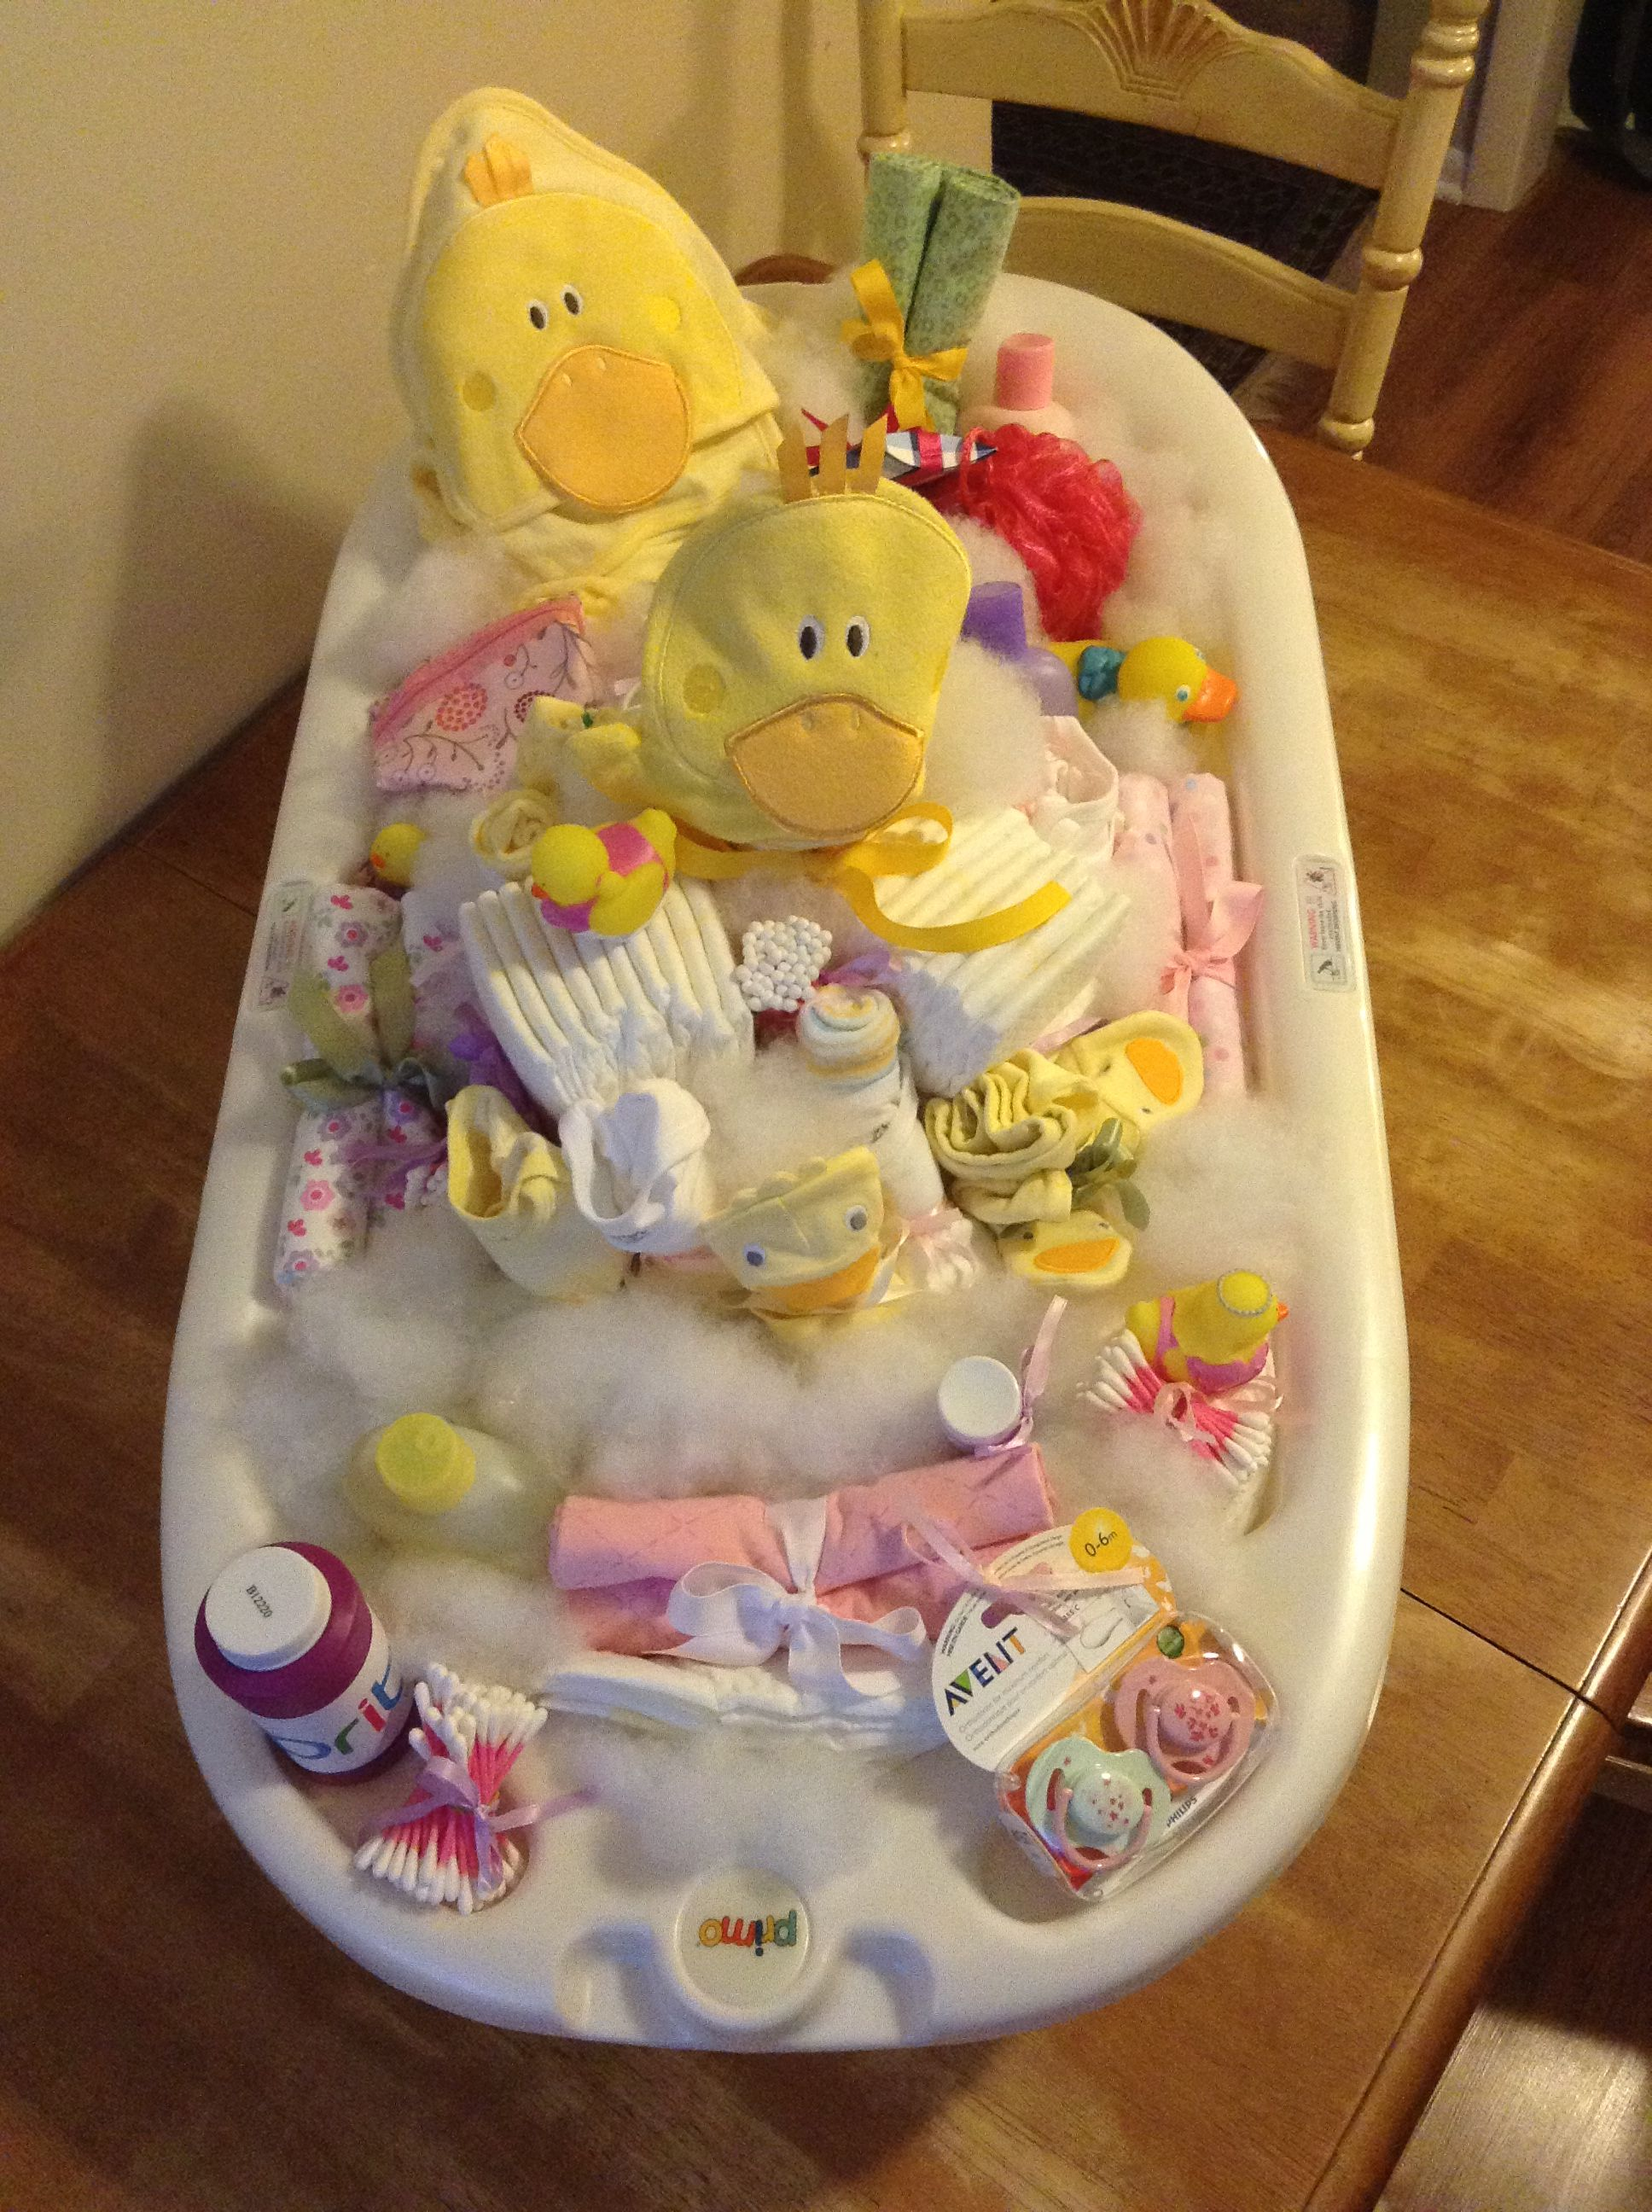 c61d28c20a86 Sweet baby shower gift. The base of the tub is filled with diapers. Way